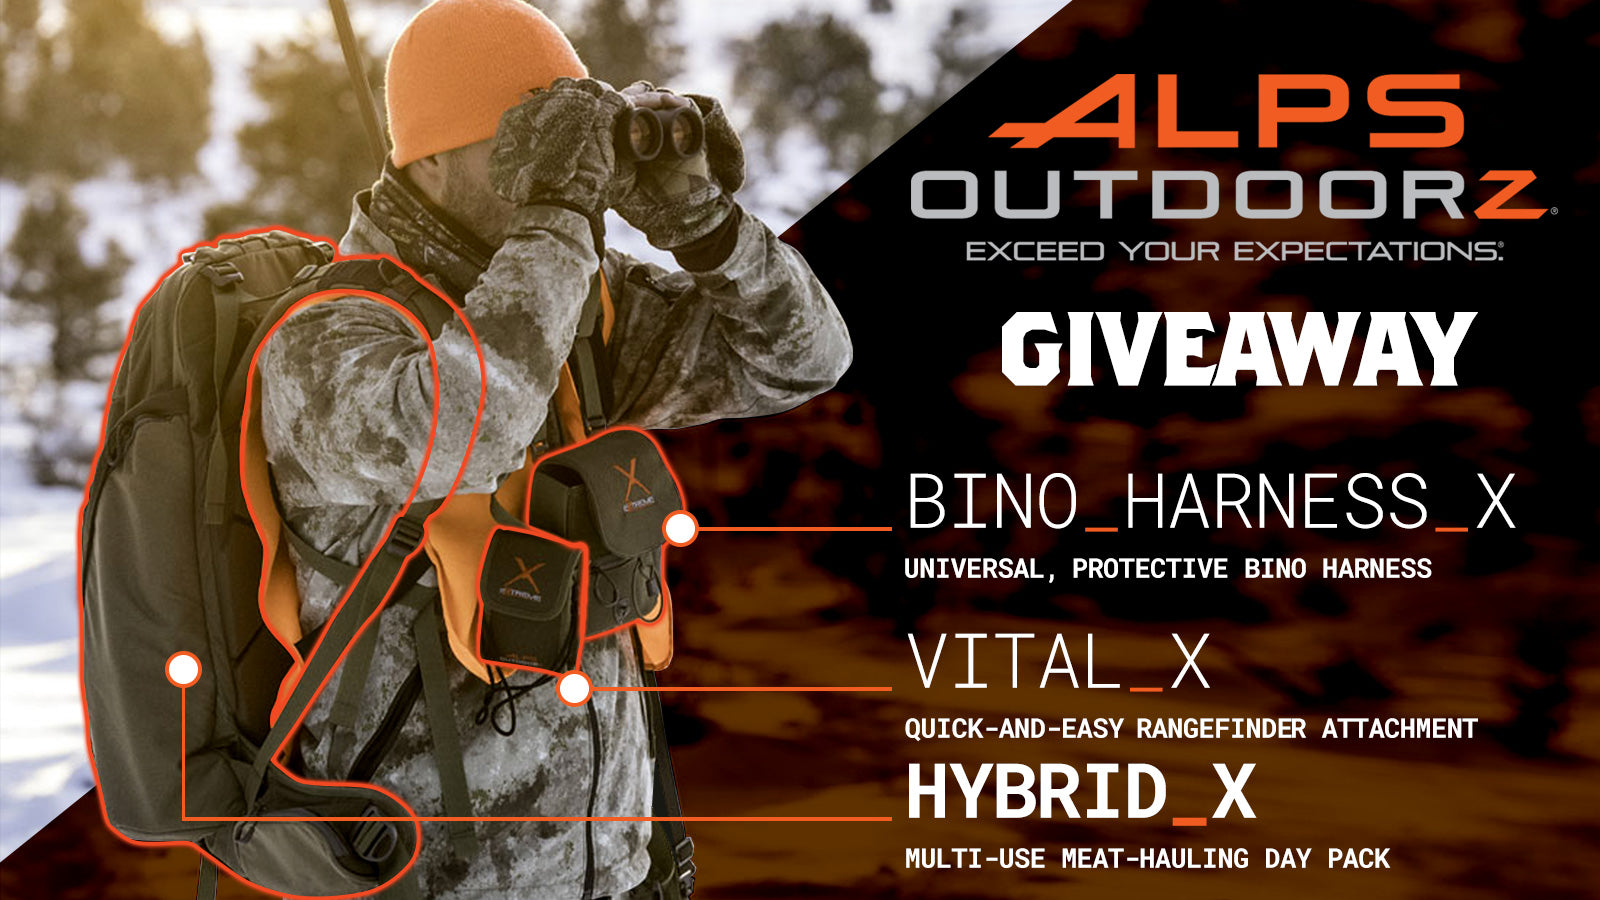 Giveaway: ALPS OutdoorZ Big Game Package